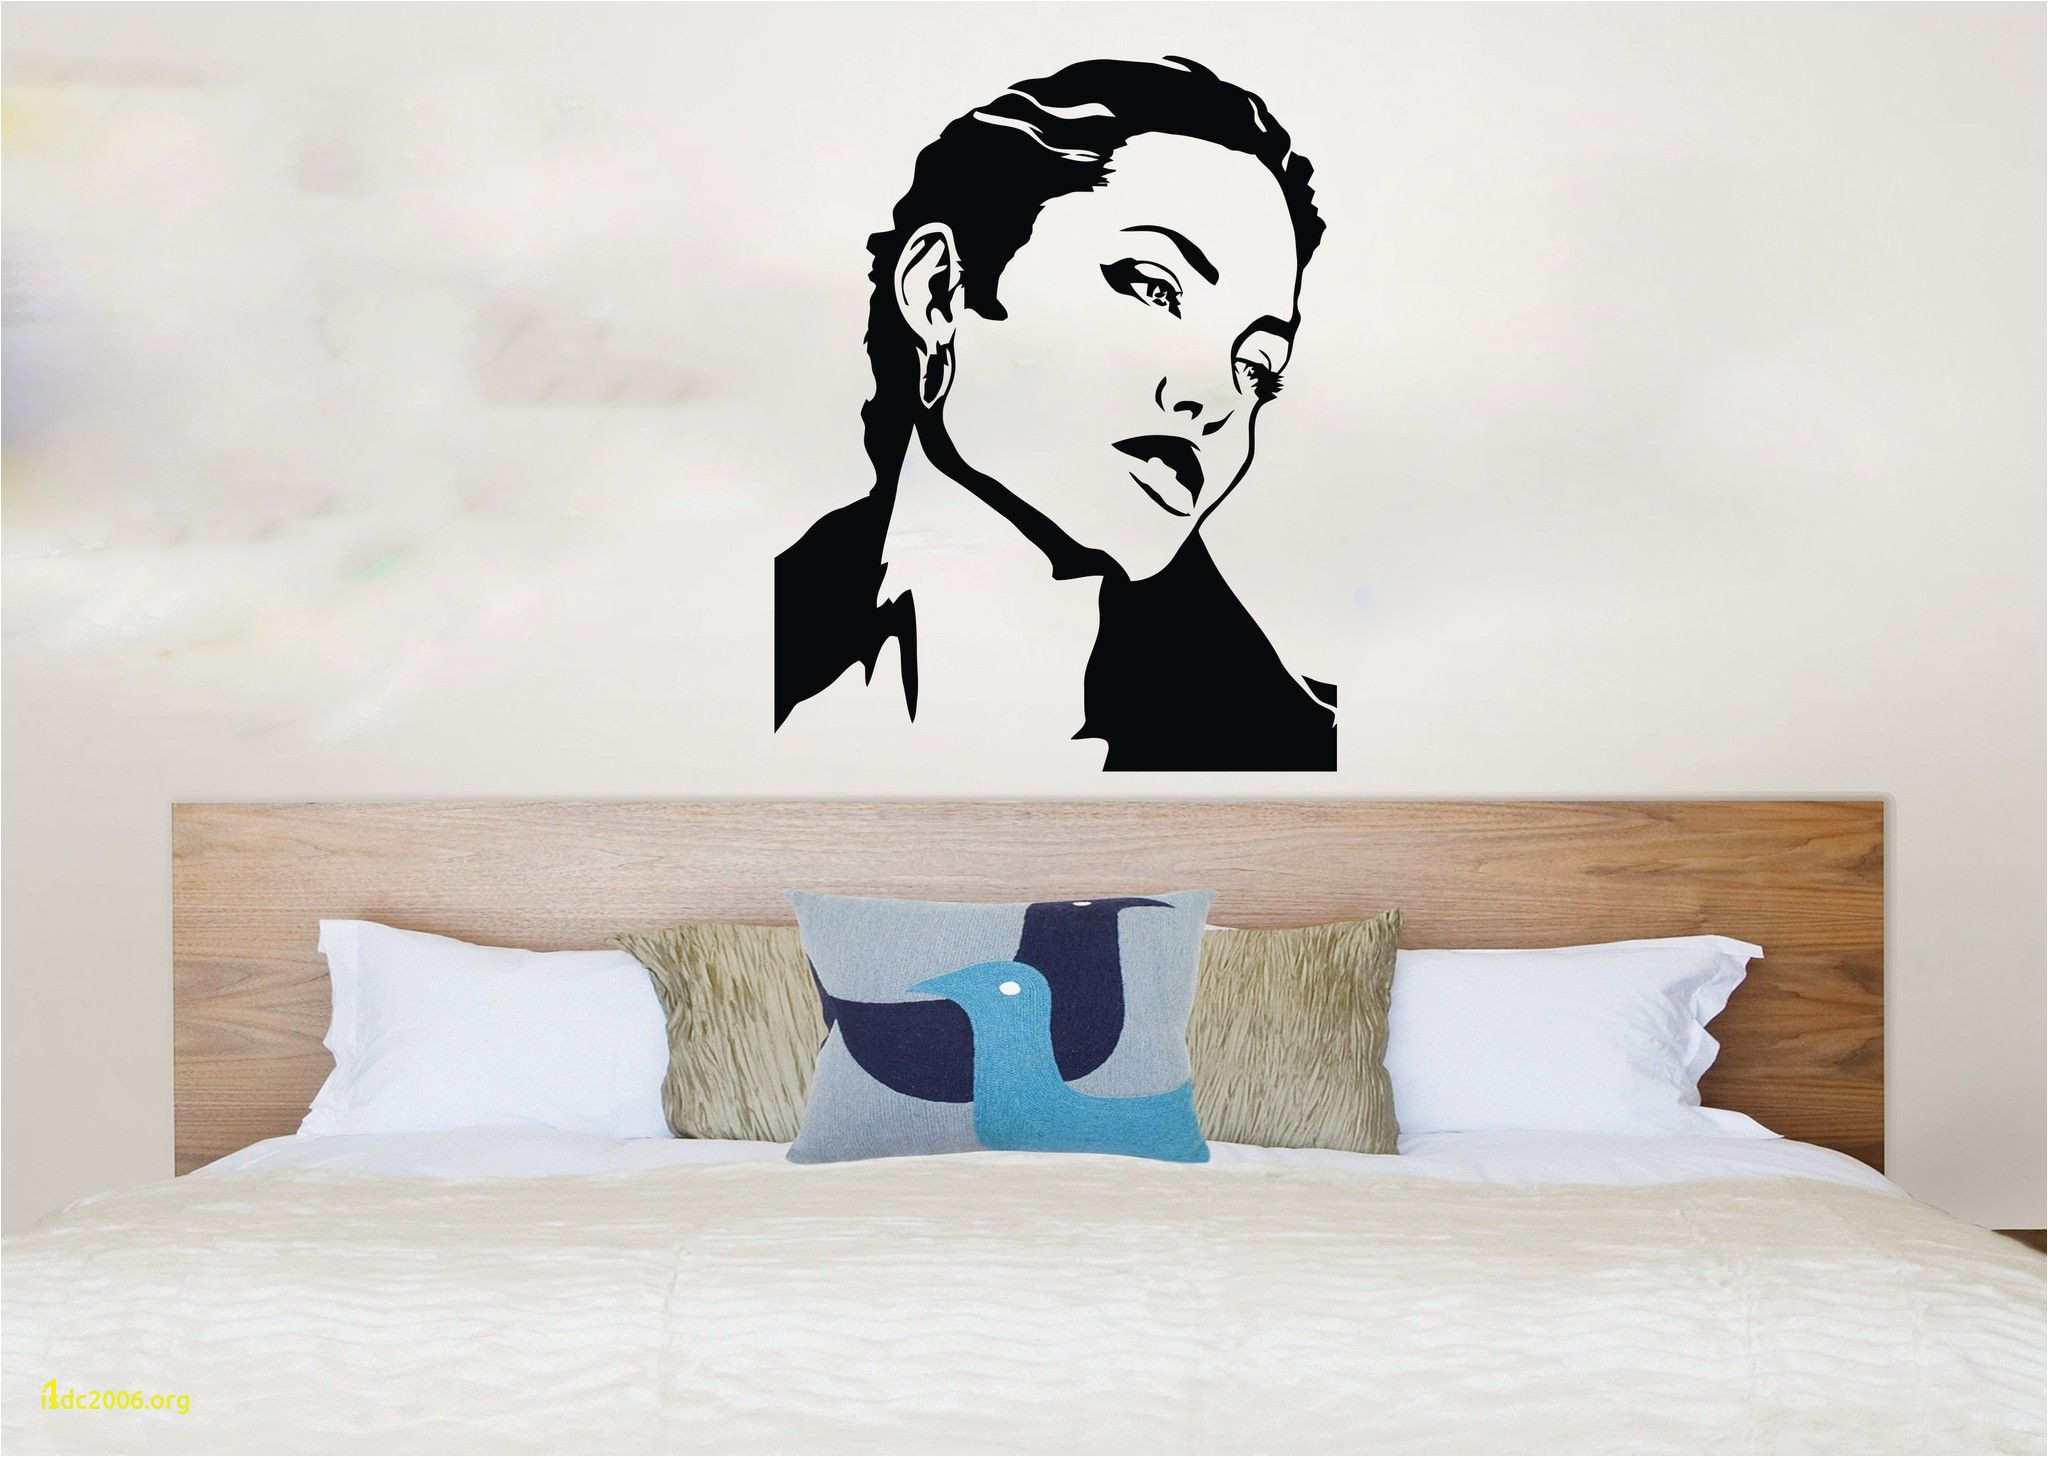 Southwestern Wall Murals Awesome southwestern Home Decor